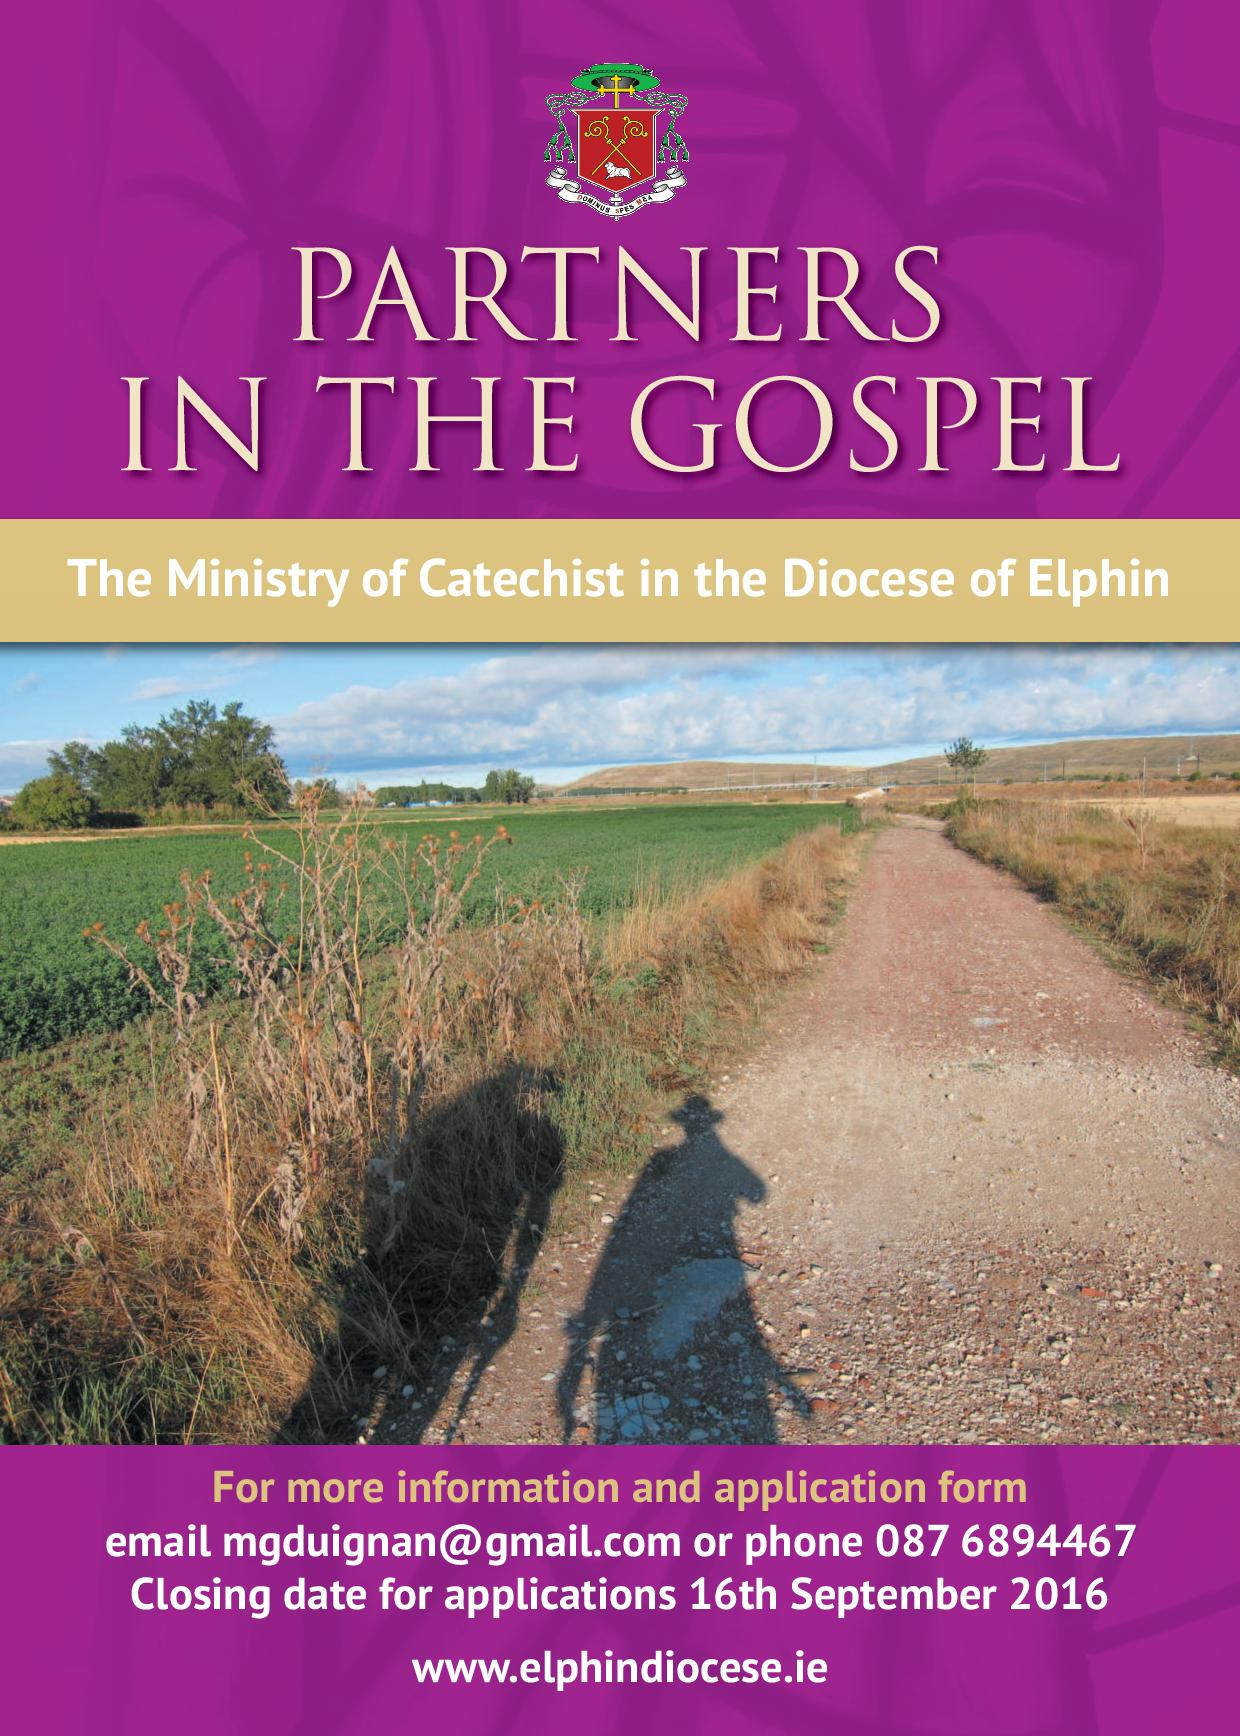 Partners-in-the-Gospel-Poster